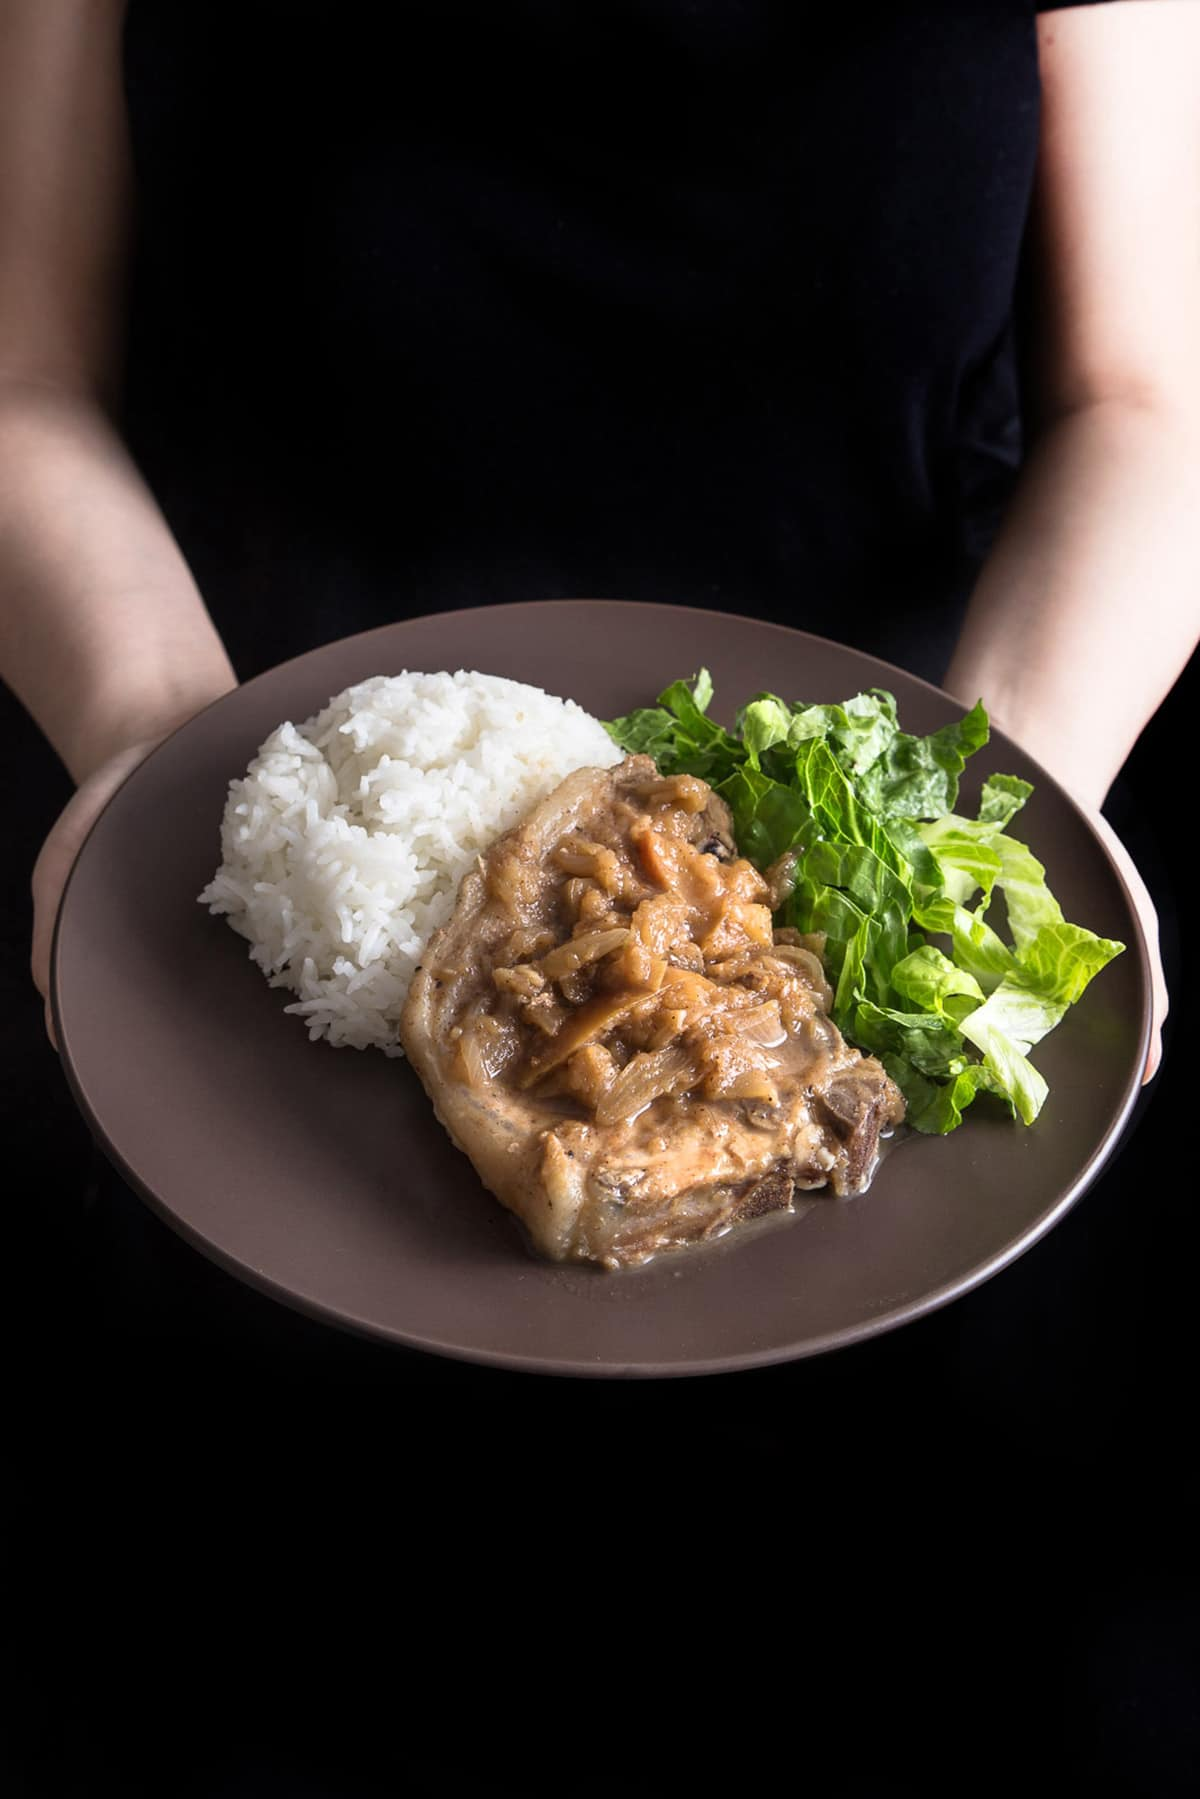 Make this quick & easy 1-minute pressure cooker pork chops and simple homemade applesauce. Moist & tender pork chops drizzled with warm cinnamon applesauce. Yum!!